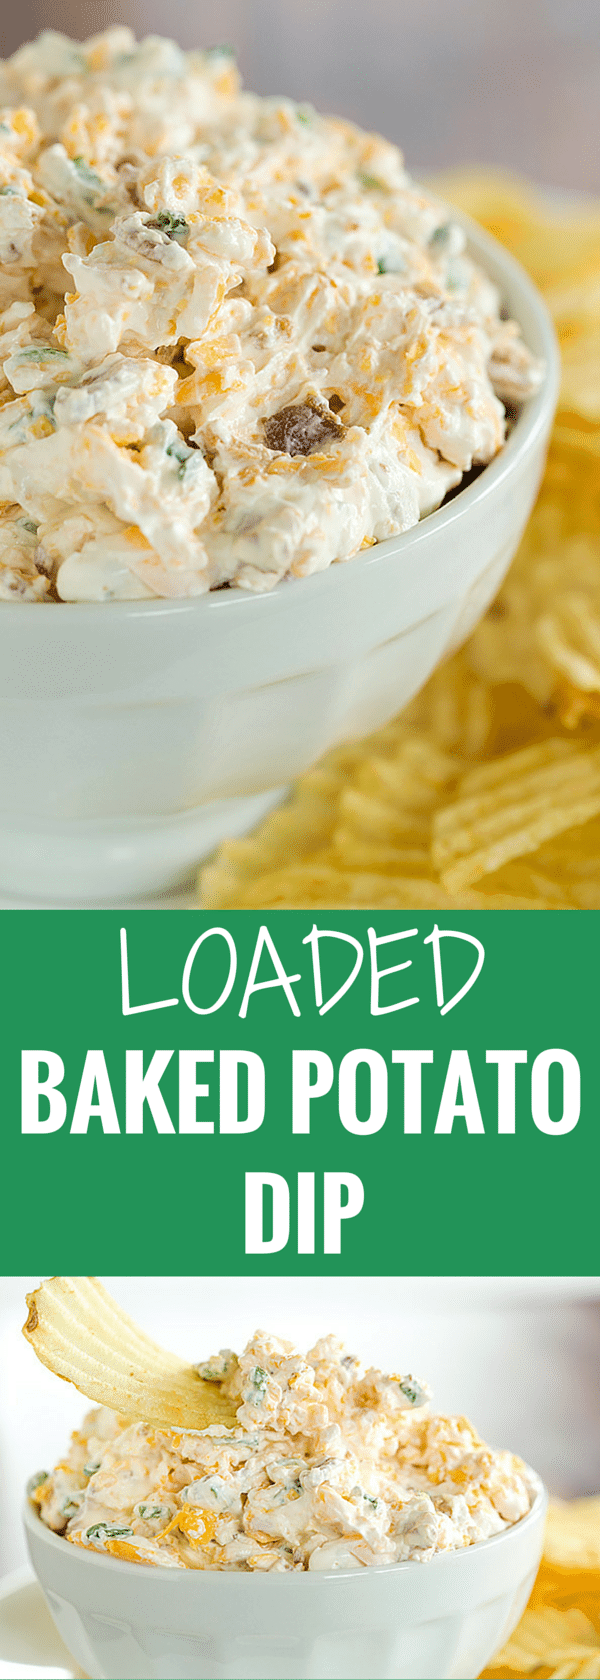 Loaded Baked Potato Dip combines the flavors of a loaded baked potato - sour cream, bacon, cheese & scallions. Scoop away with potato chips!